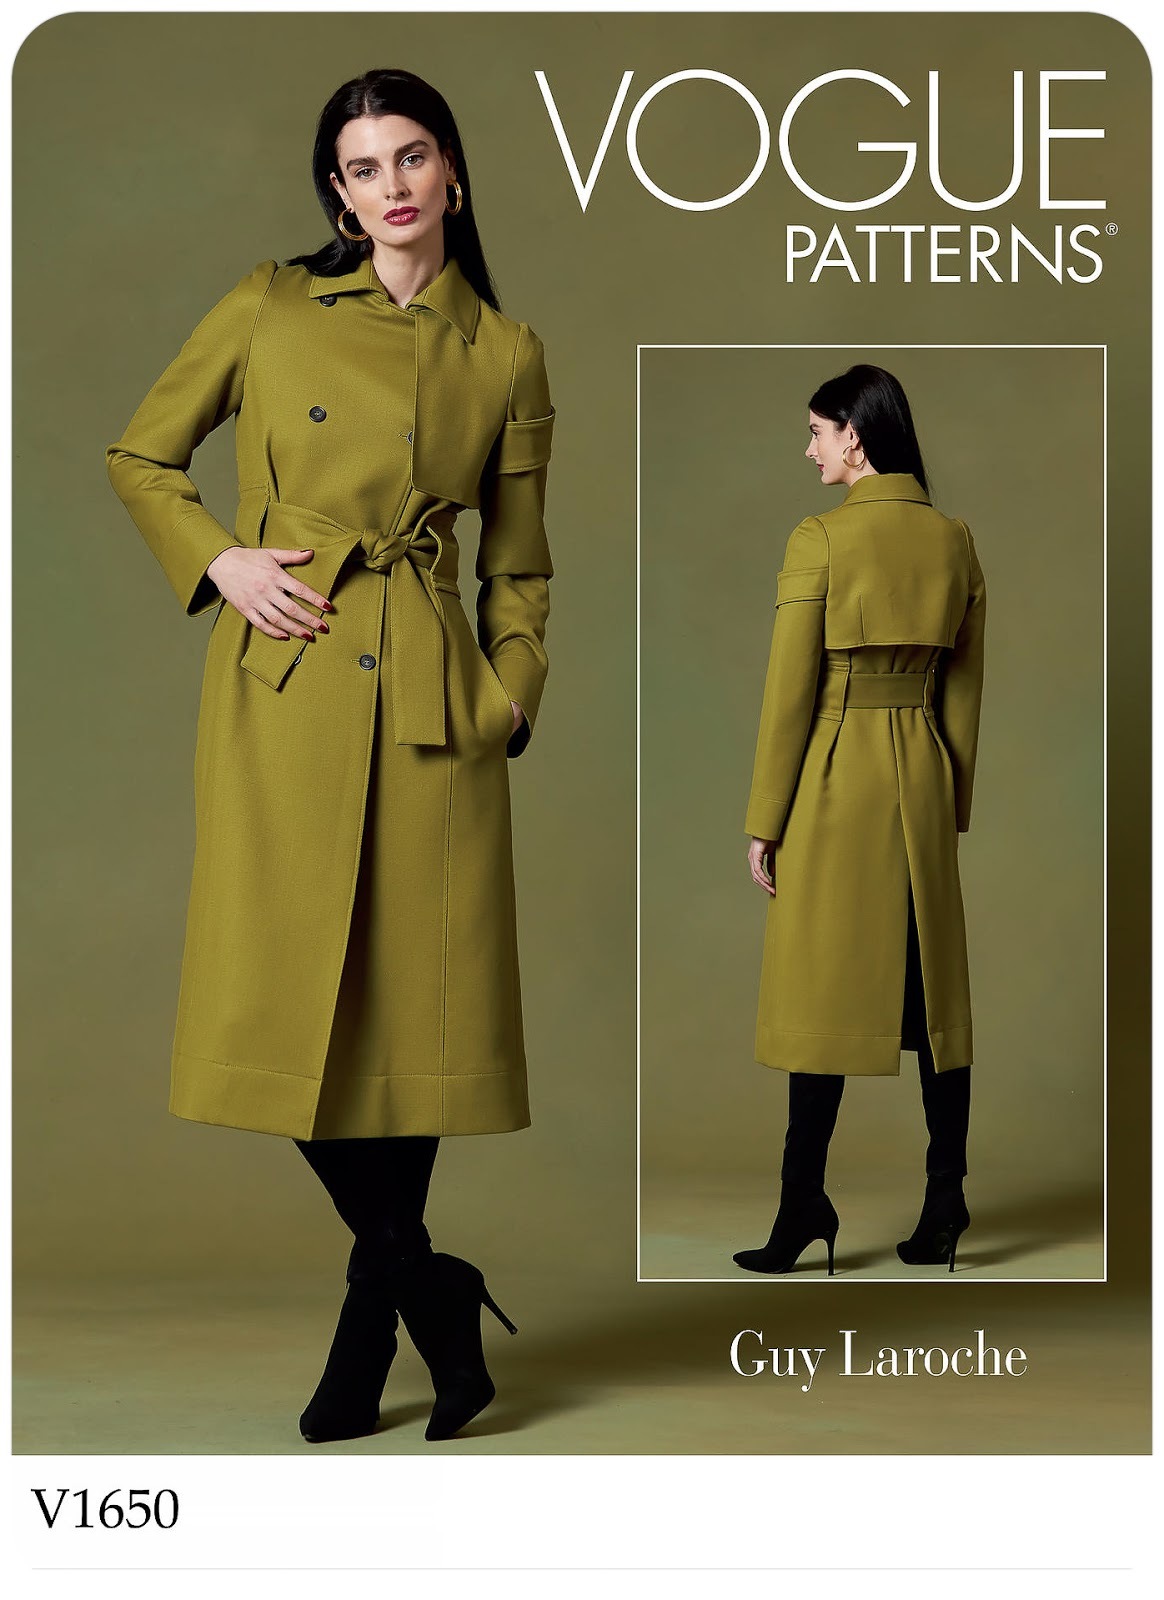 Vogue Patterns 1650 - #V1650